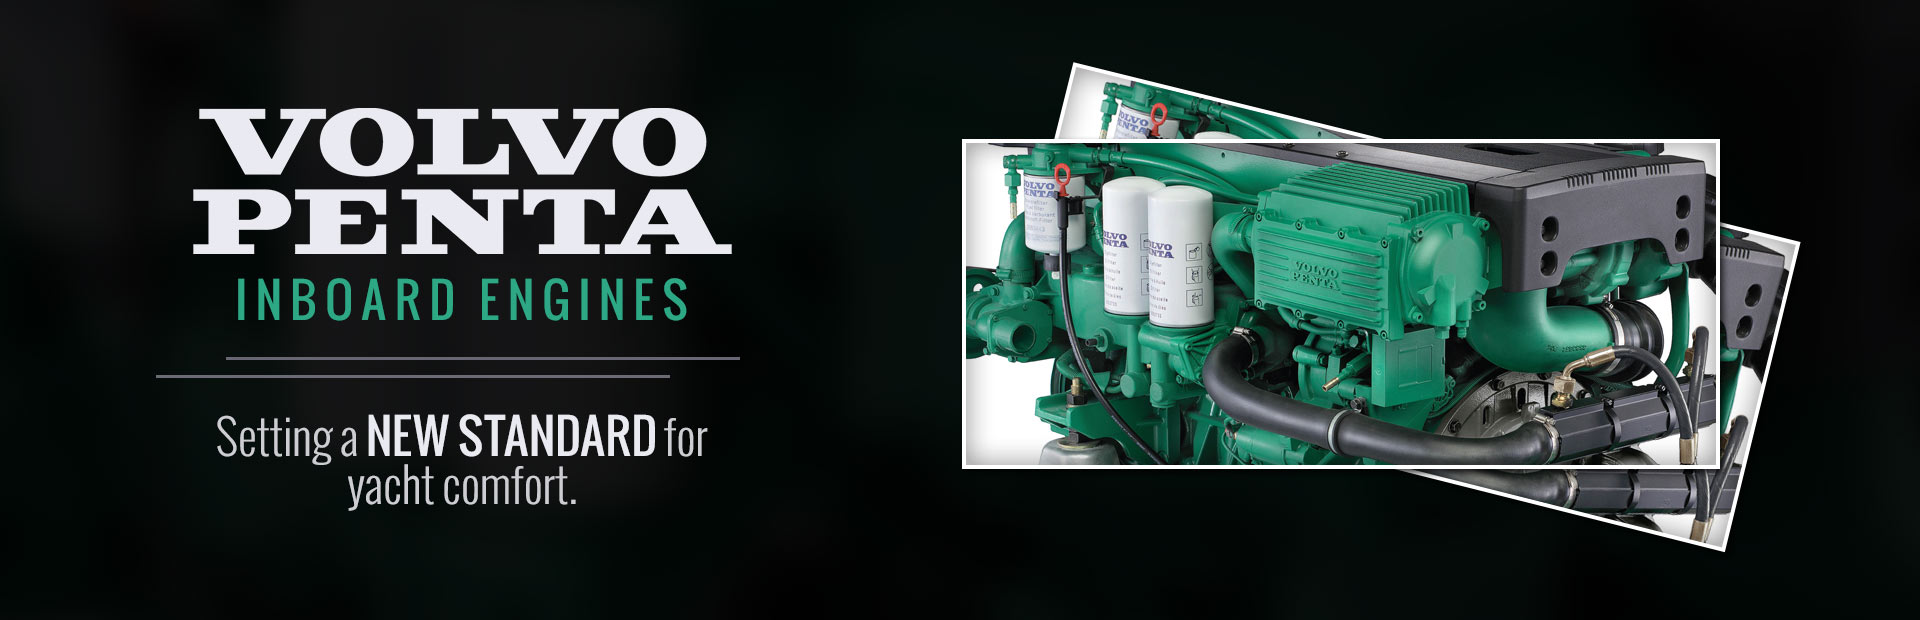 Volvo Penta Inboard Engines: Click here to view the models.